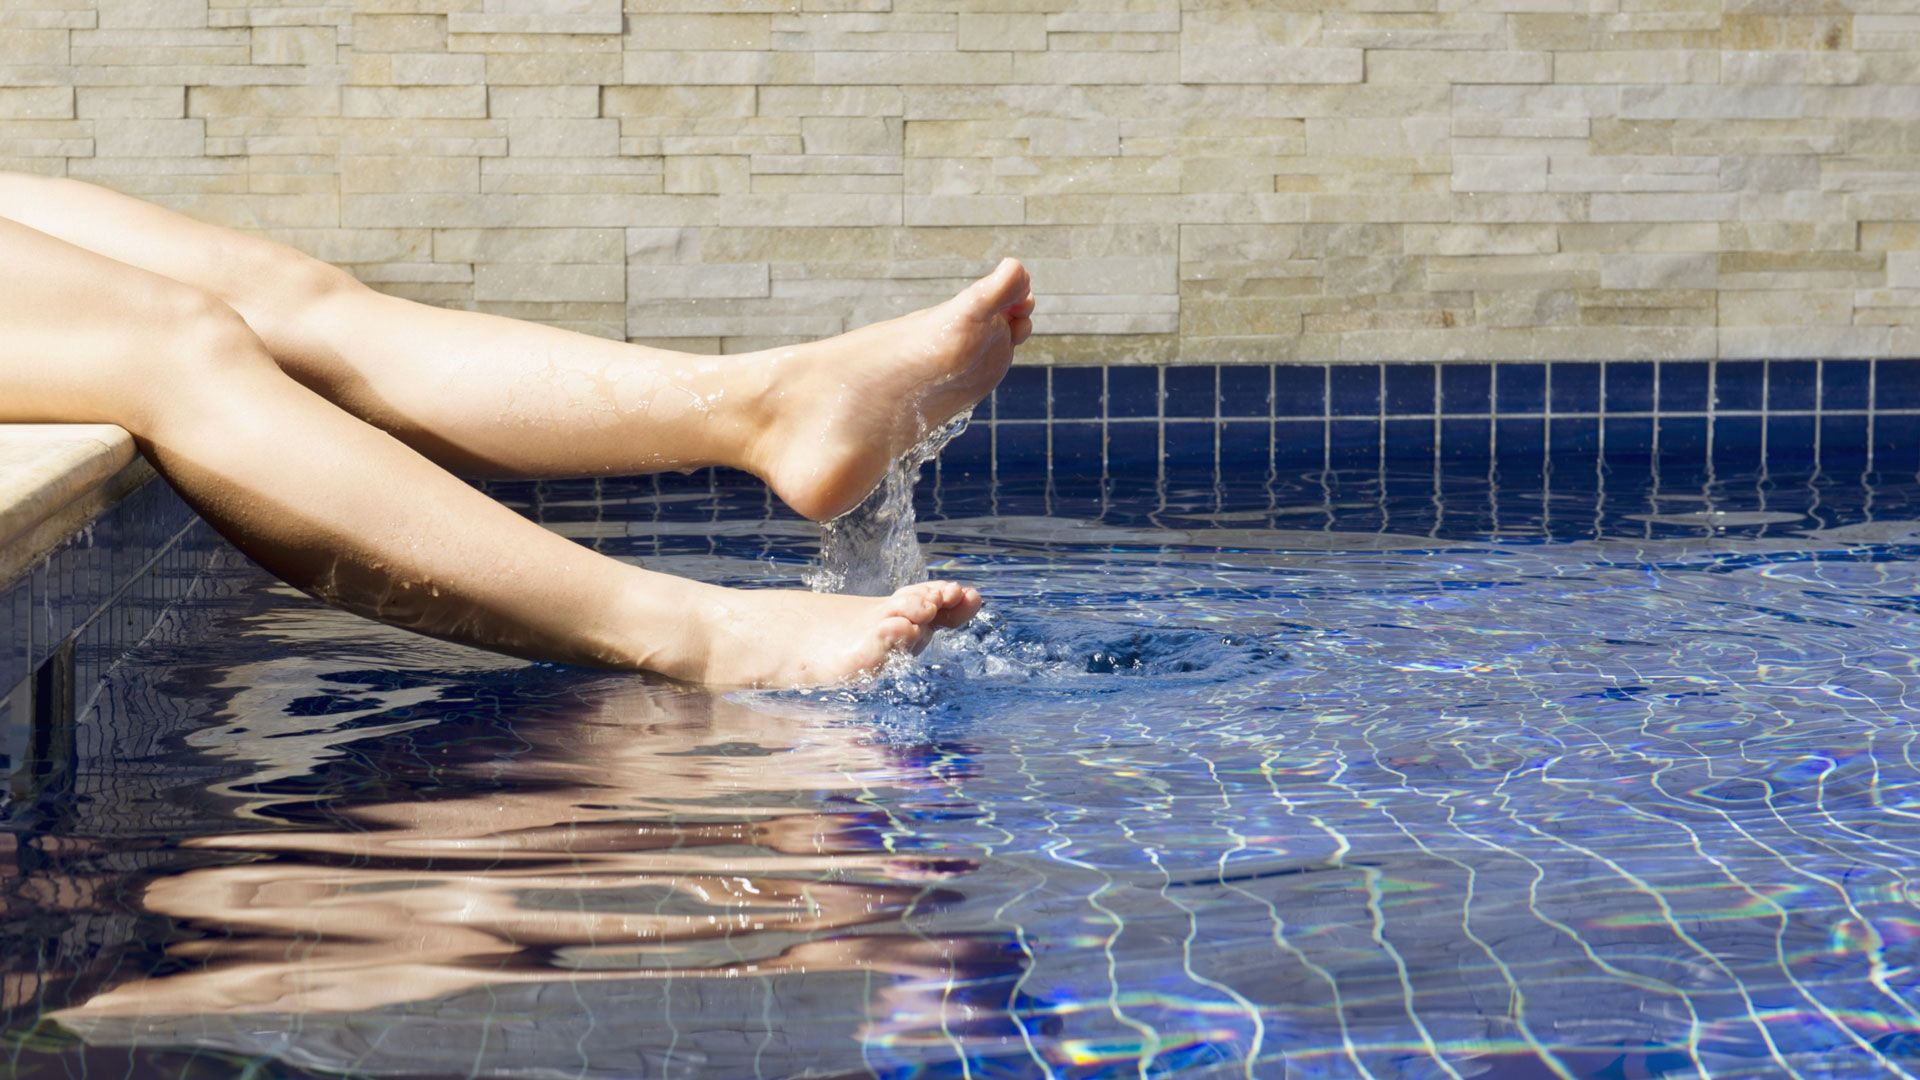 <p>Your post-pool regimen is vital when it comes to your skin. Even after a shower, chlorine can cling to skin and react with topical medications, cleansers, and even lotions. To effectively remove chlorine, always use an extra sudsy soap after you take a dip.</p>